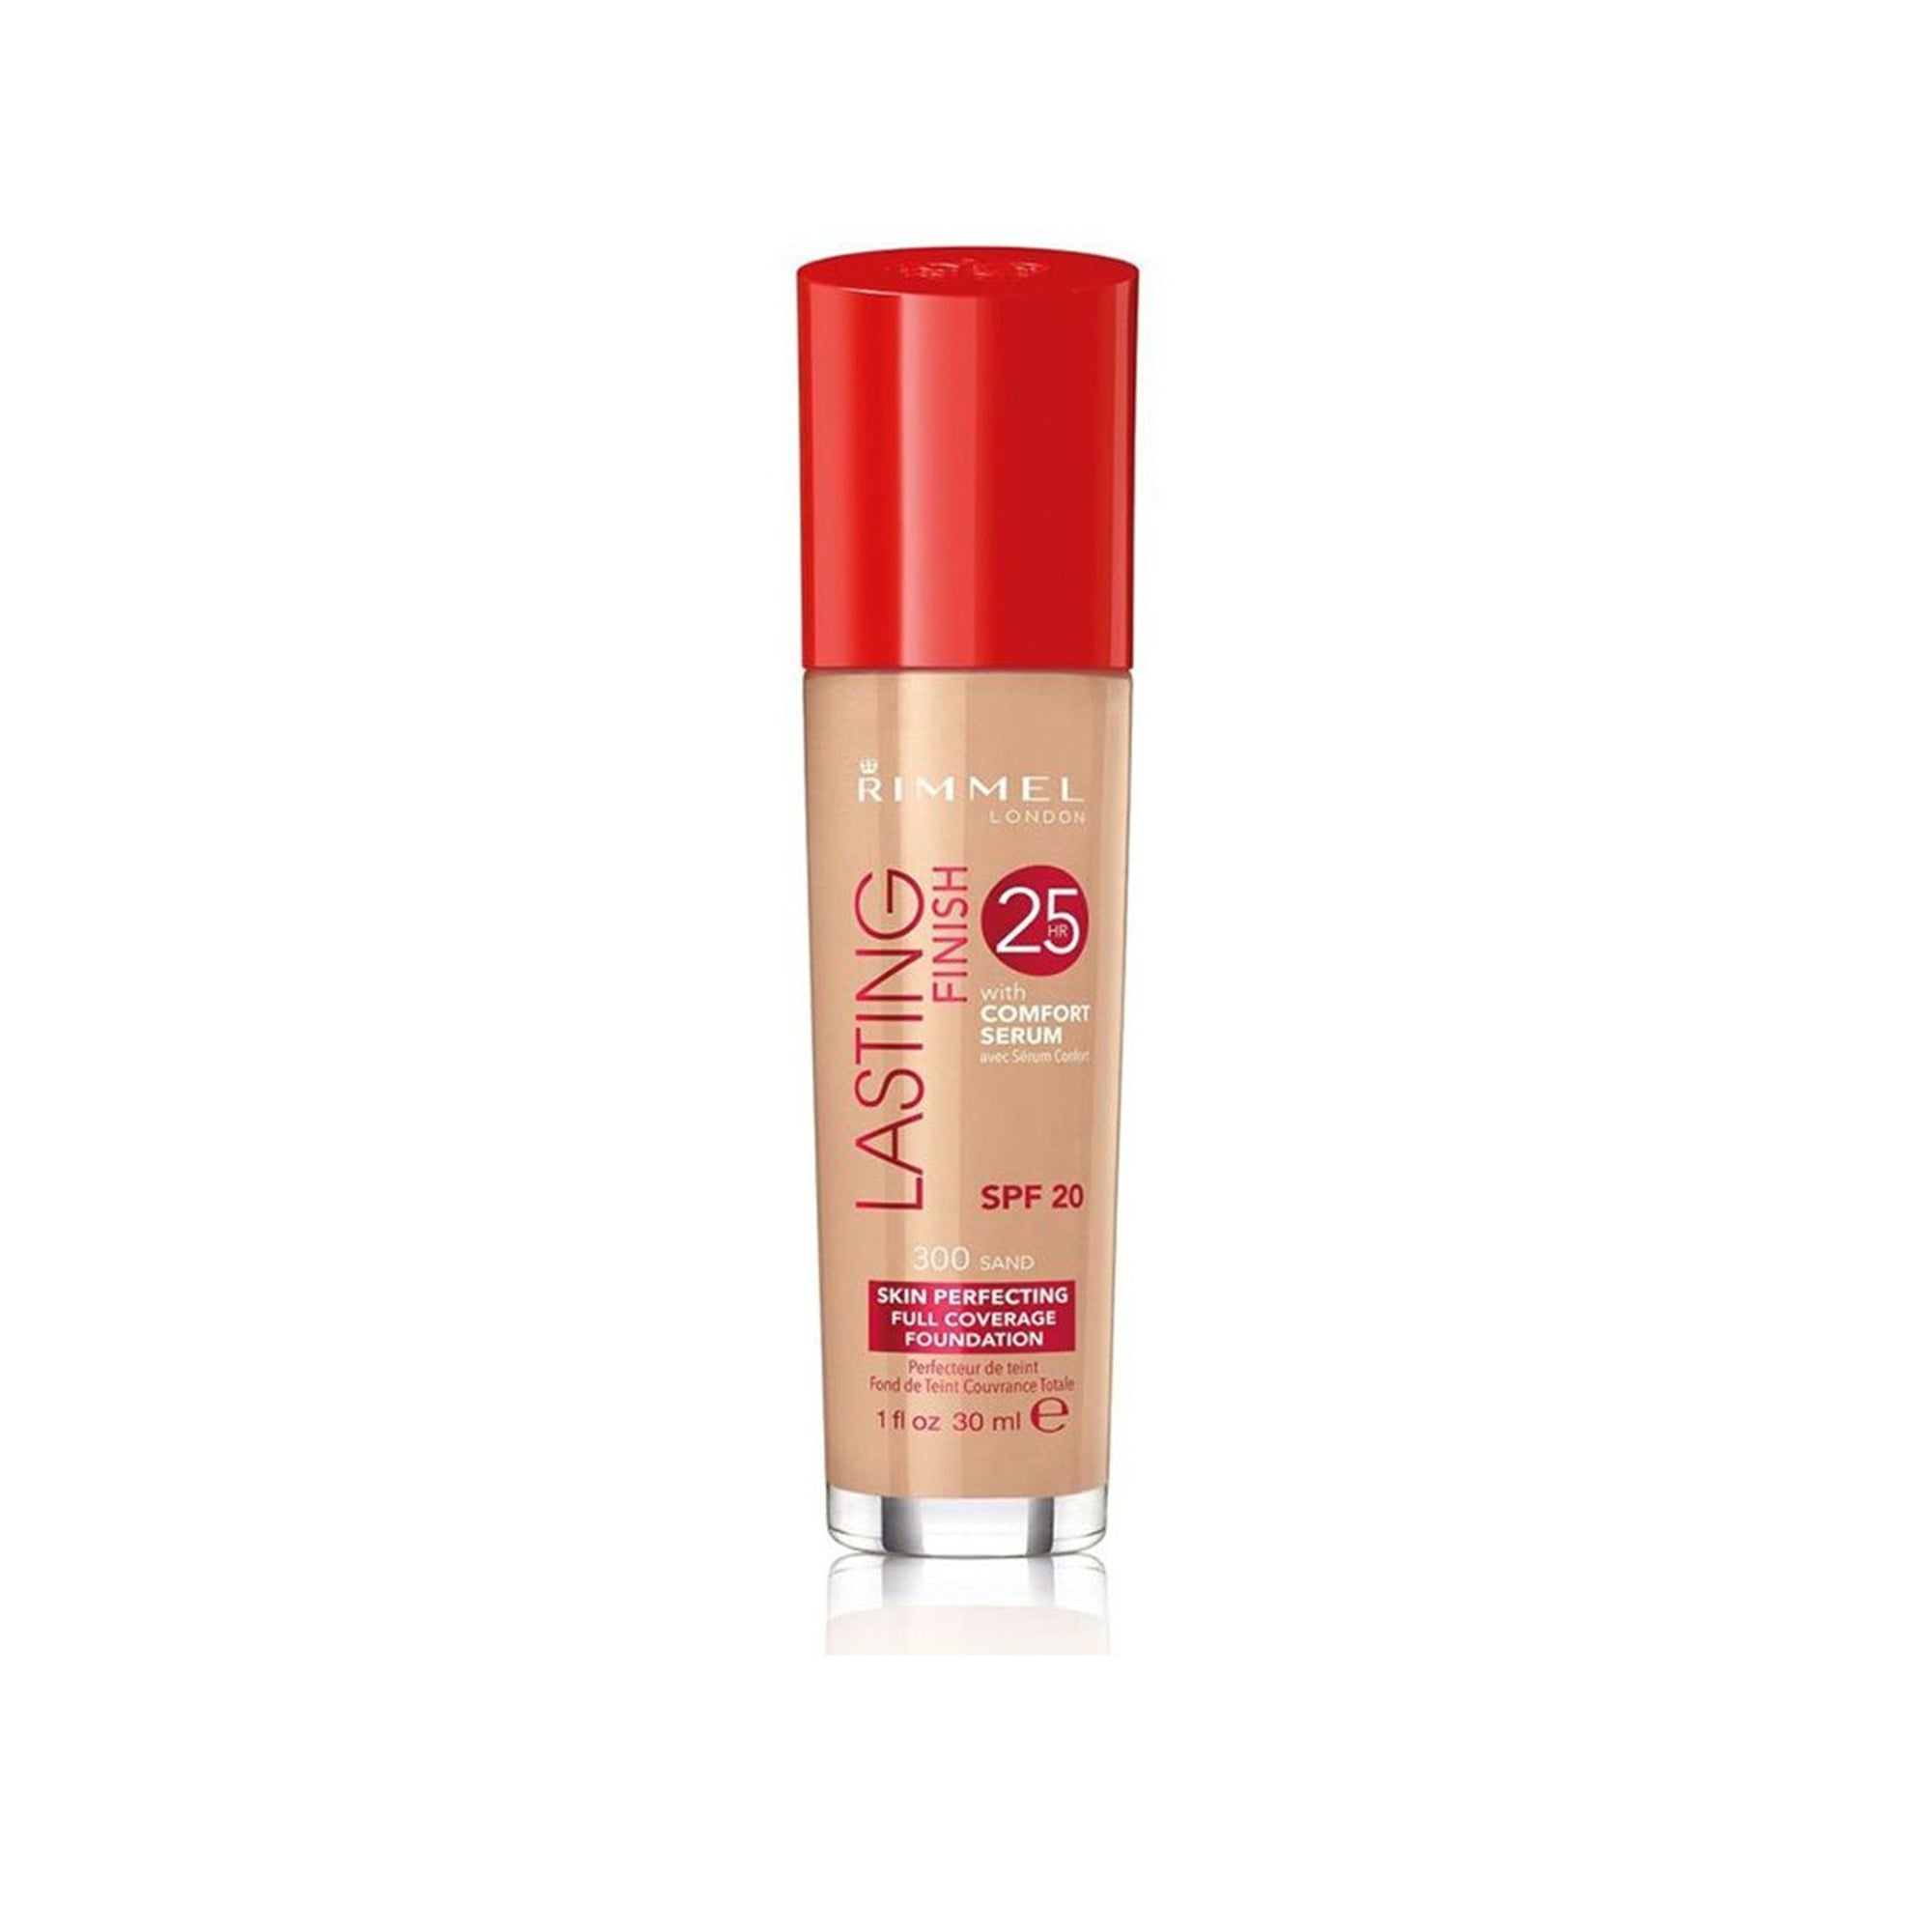 Rimmel London Lasting Finish Skin Perfecting Foundation